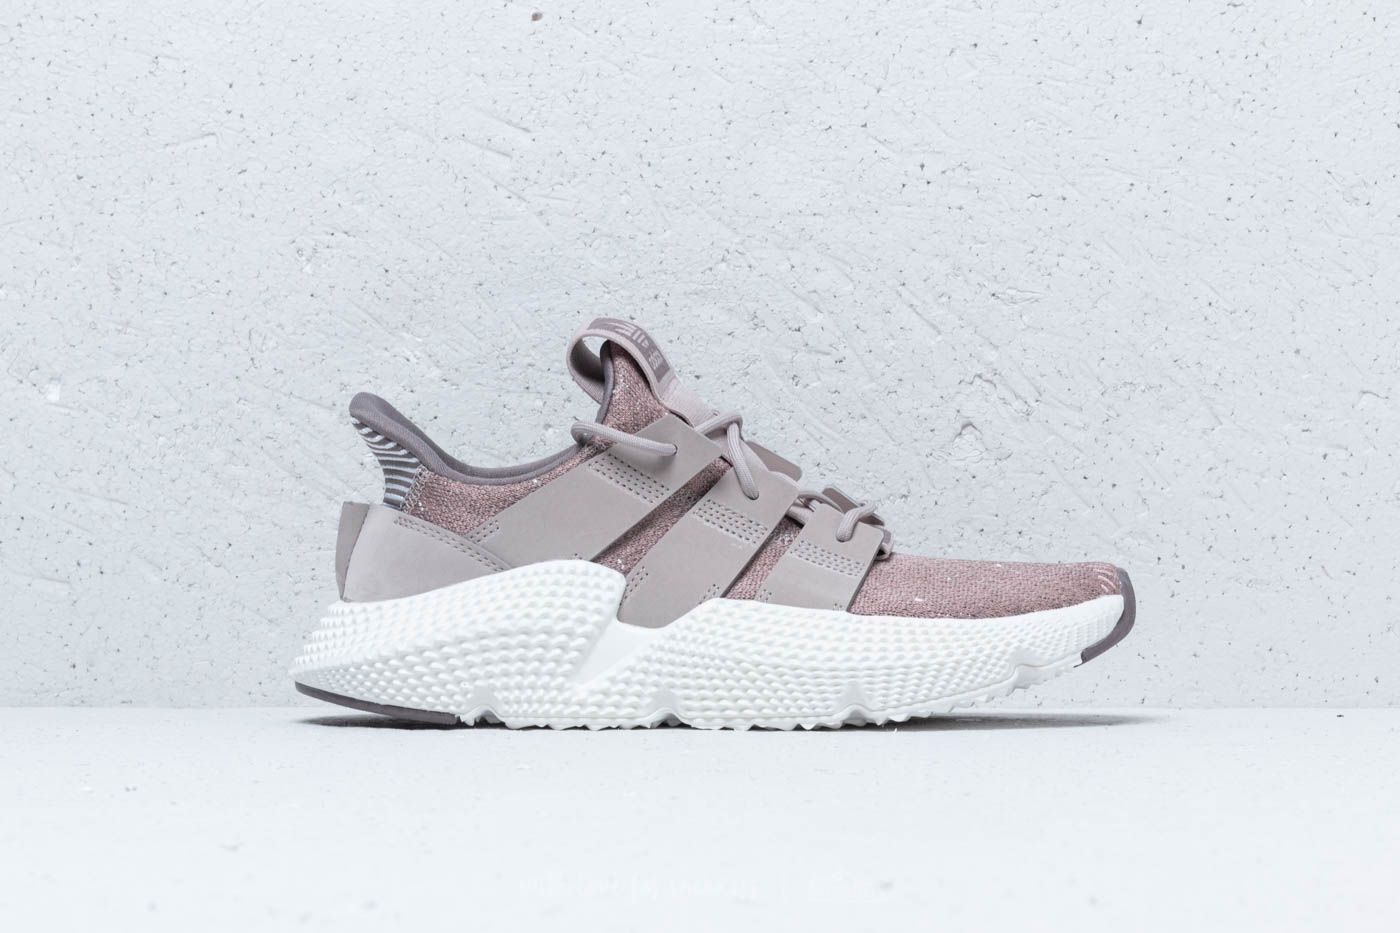 quality design 082ab 060f0 adidas Prophere Vapour Grey  Vapour Grey  Tech Earth at a great price  100  buy